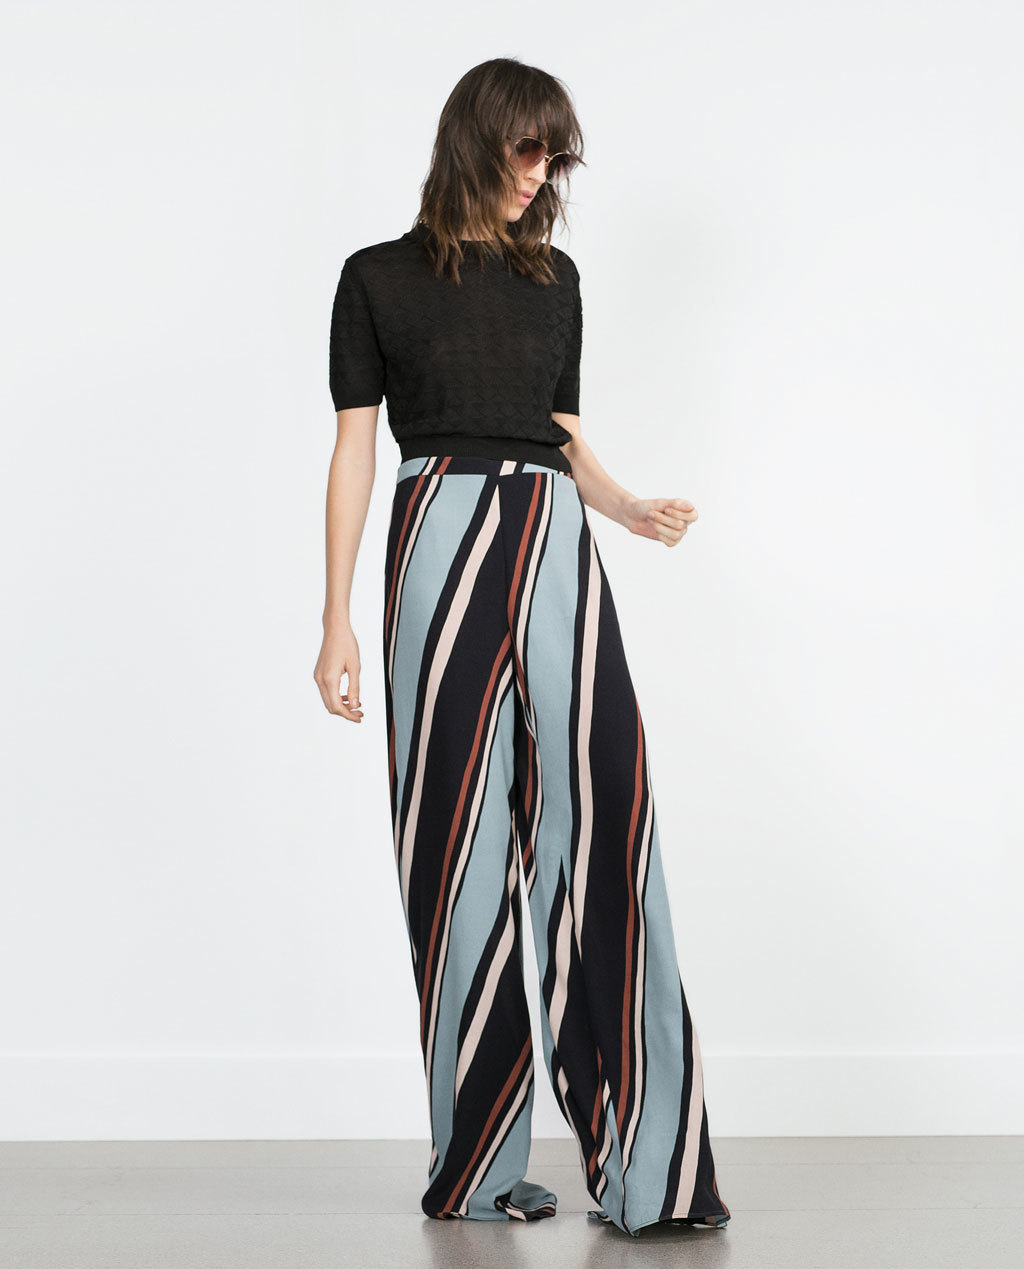 Striped Trousers - length: standard; pattern: vertical stripes; style: palazzo; waist: high rise; predominant colour: pale blue; occasions: casual; fit: wide leg; texture group: other - light to midweight; season: a/w 2015; trends: crazy prints; wardrobe: highlight